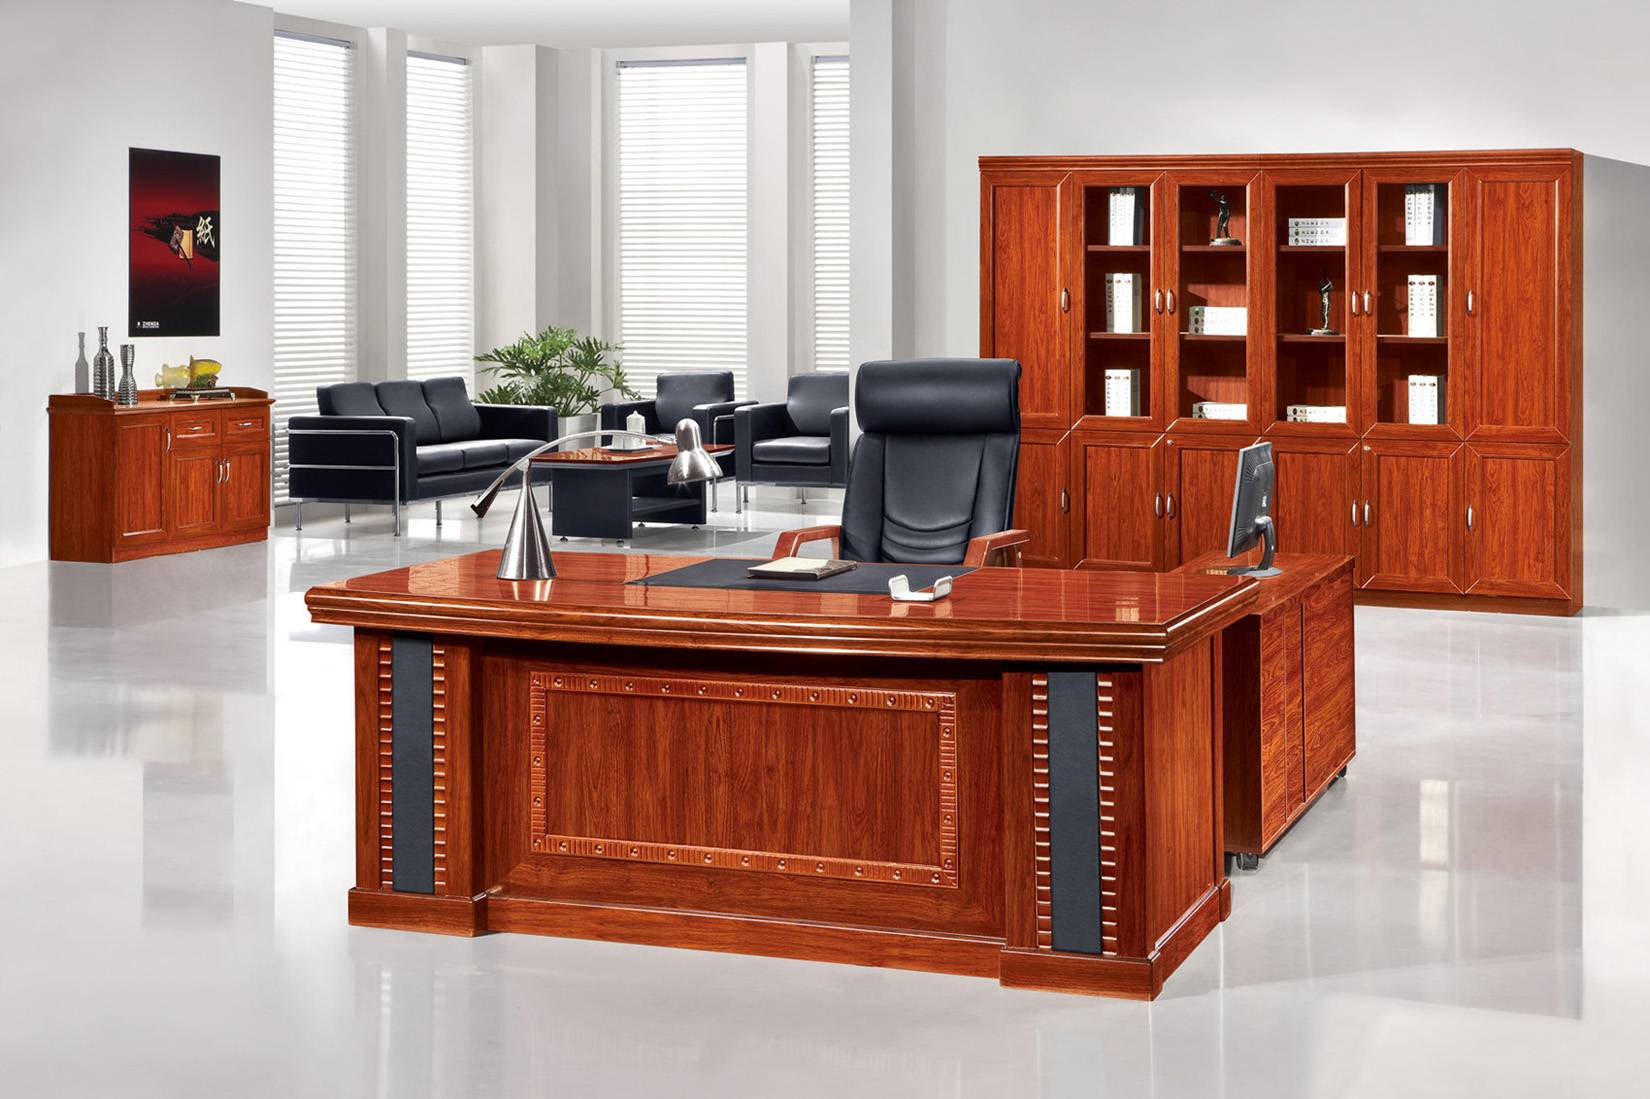 Classic Wooden Office Desk - Foshan Zhenda Furniture Co., Ltd